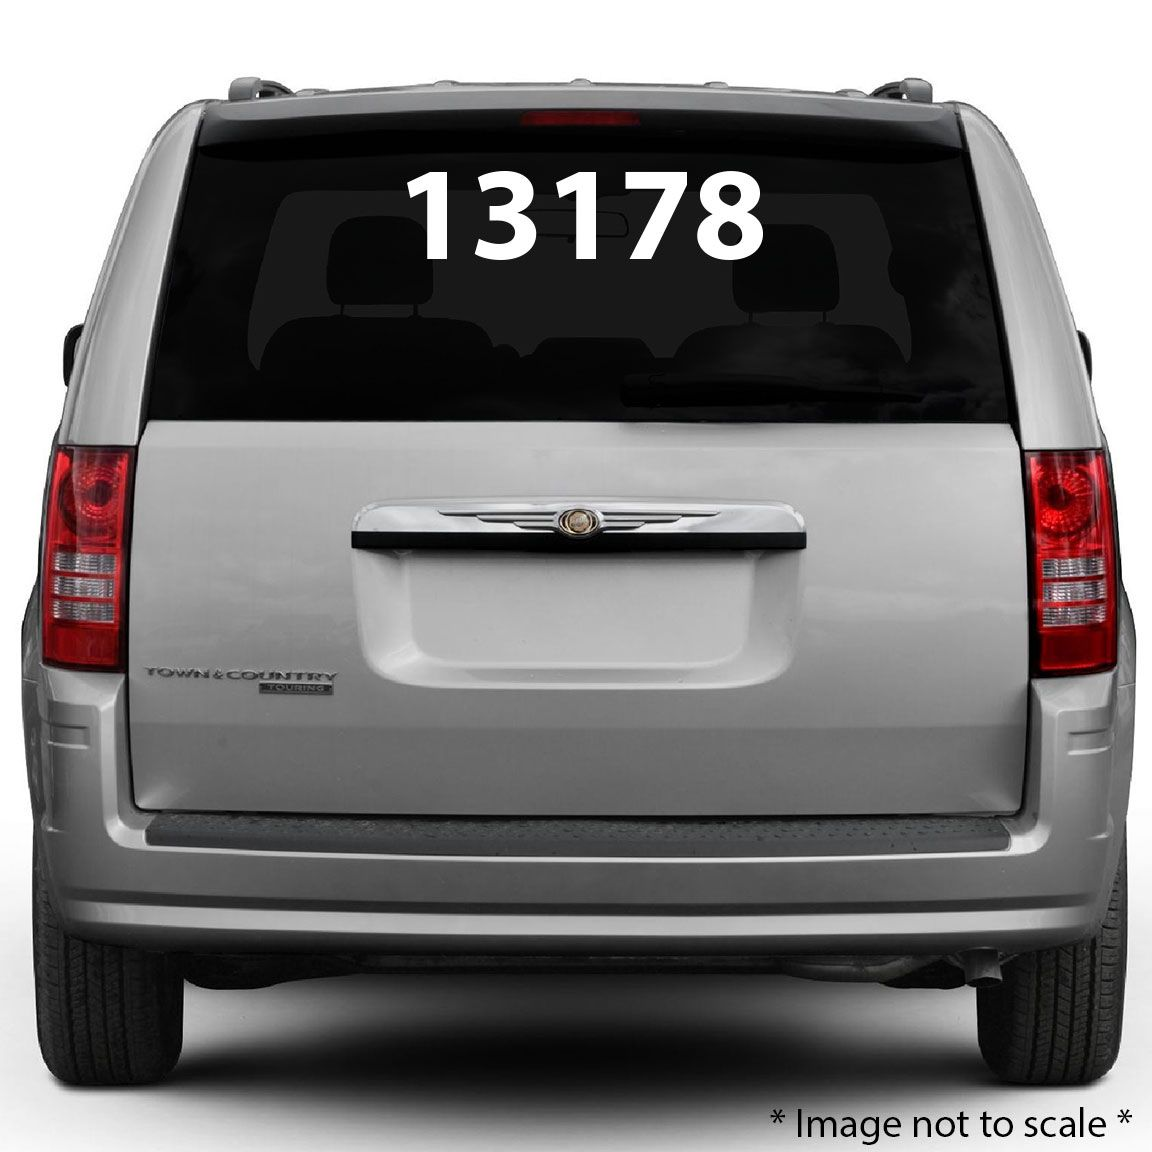 Rear Glass Decal Style - Custom rear window decals for cars